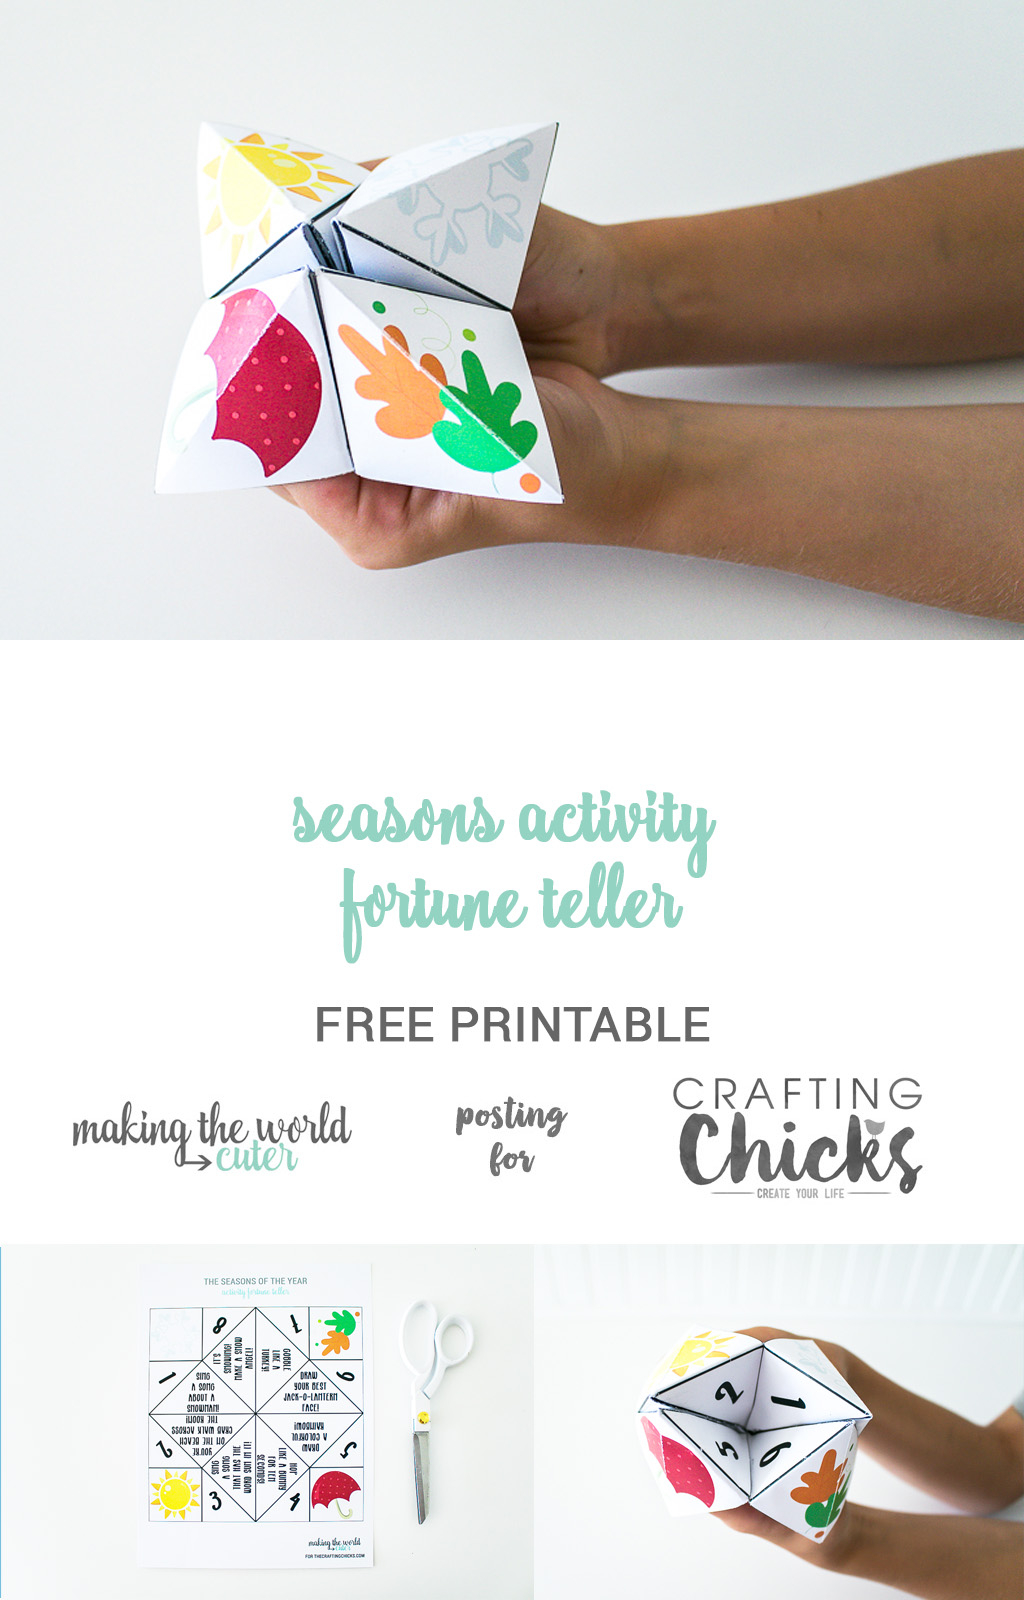 Origami Fortune Teller Sayings Seasons Activity Fortune Teller Free Printable The Crafting Chicks